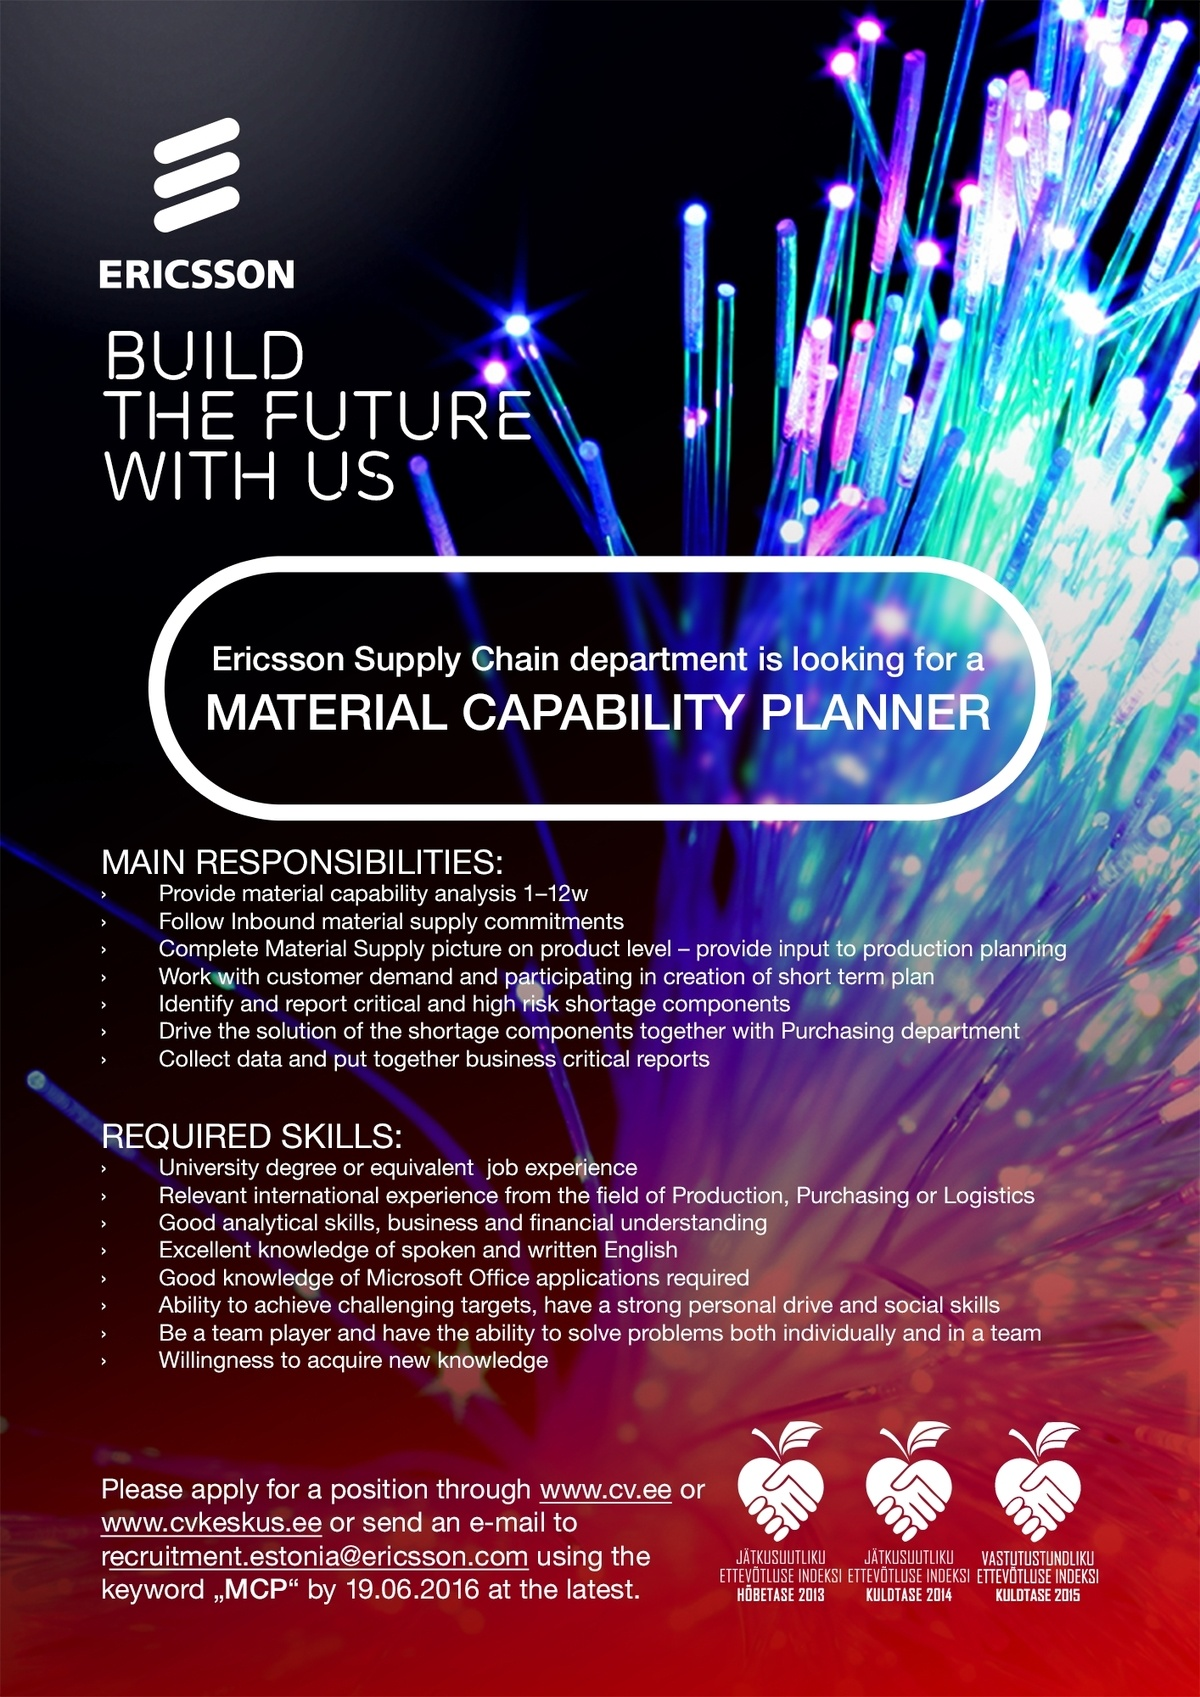 CV Market´s client MATERIAL CAPABILITY PLANNER